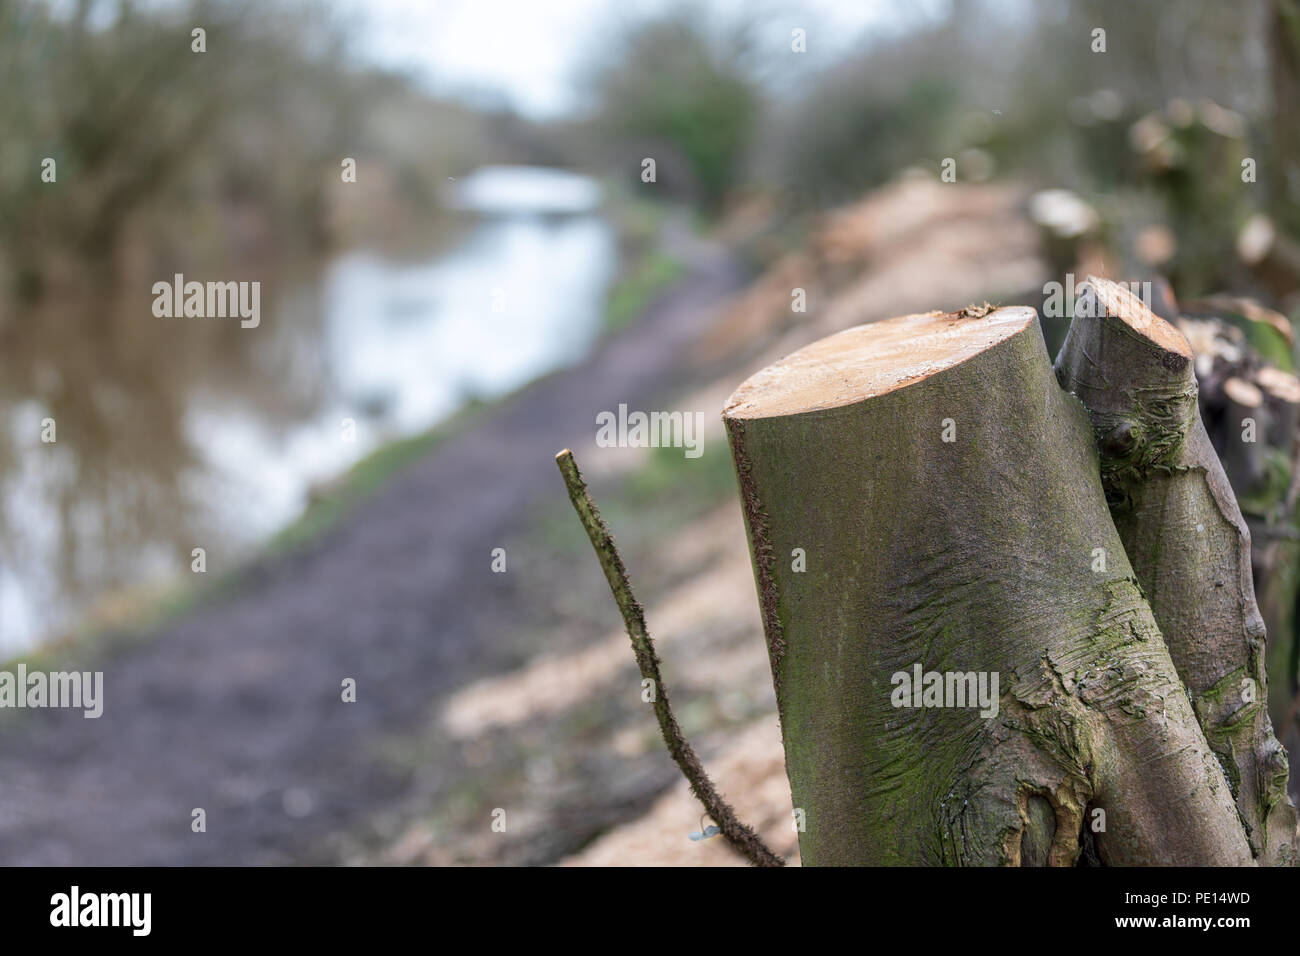 Tree stumps after trees have been cut down on the Macclesfield canal in Cheshire as part of a conservation based canal towpath maintenance programme - Stock Image